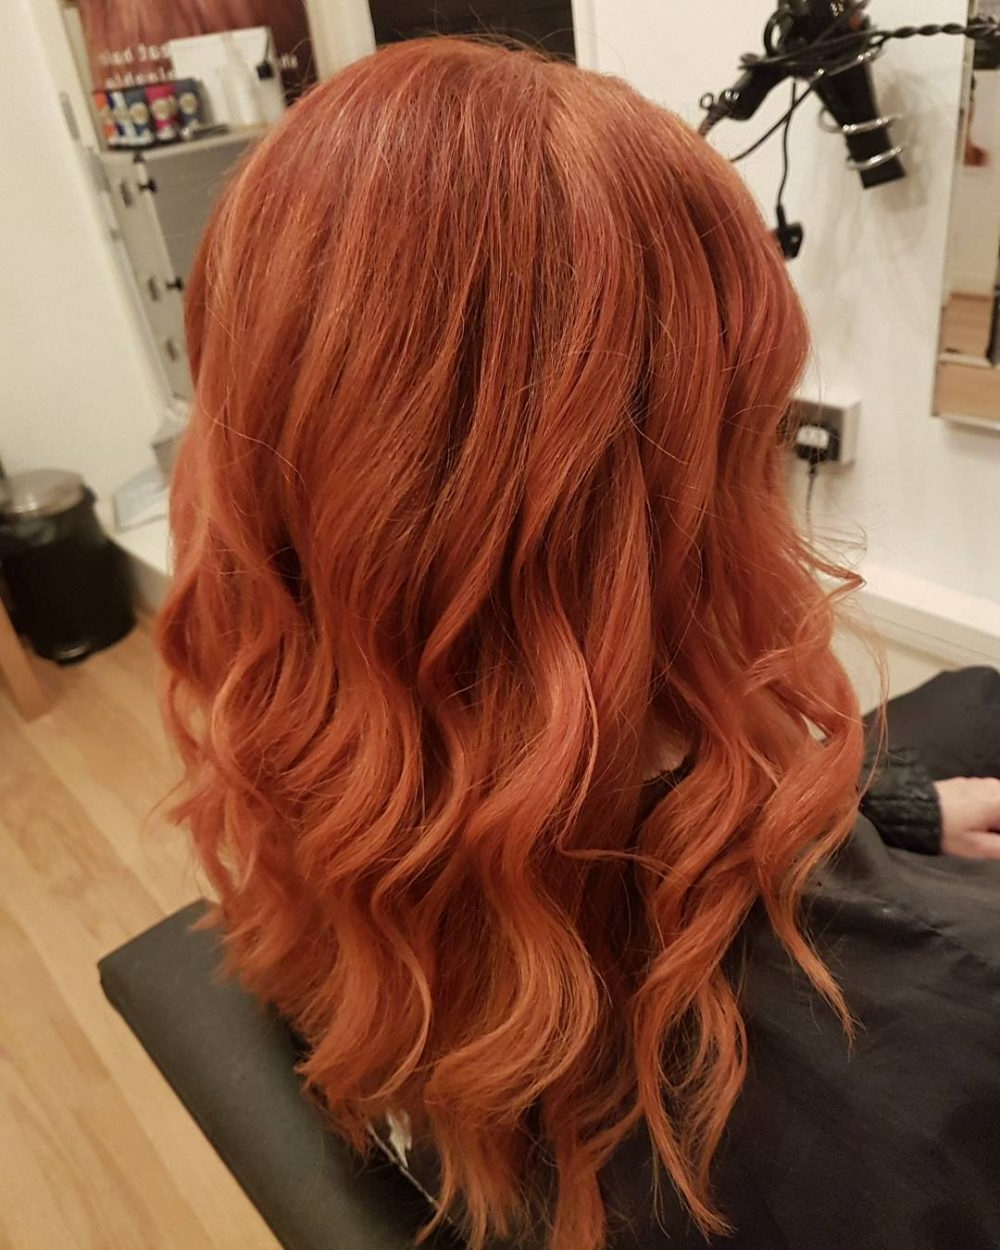 37 Chic Medium Length Wavy Hairstyles In 2019 Regarding Well Known Red Hair Medium Haircuts (View 9 of 20)